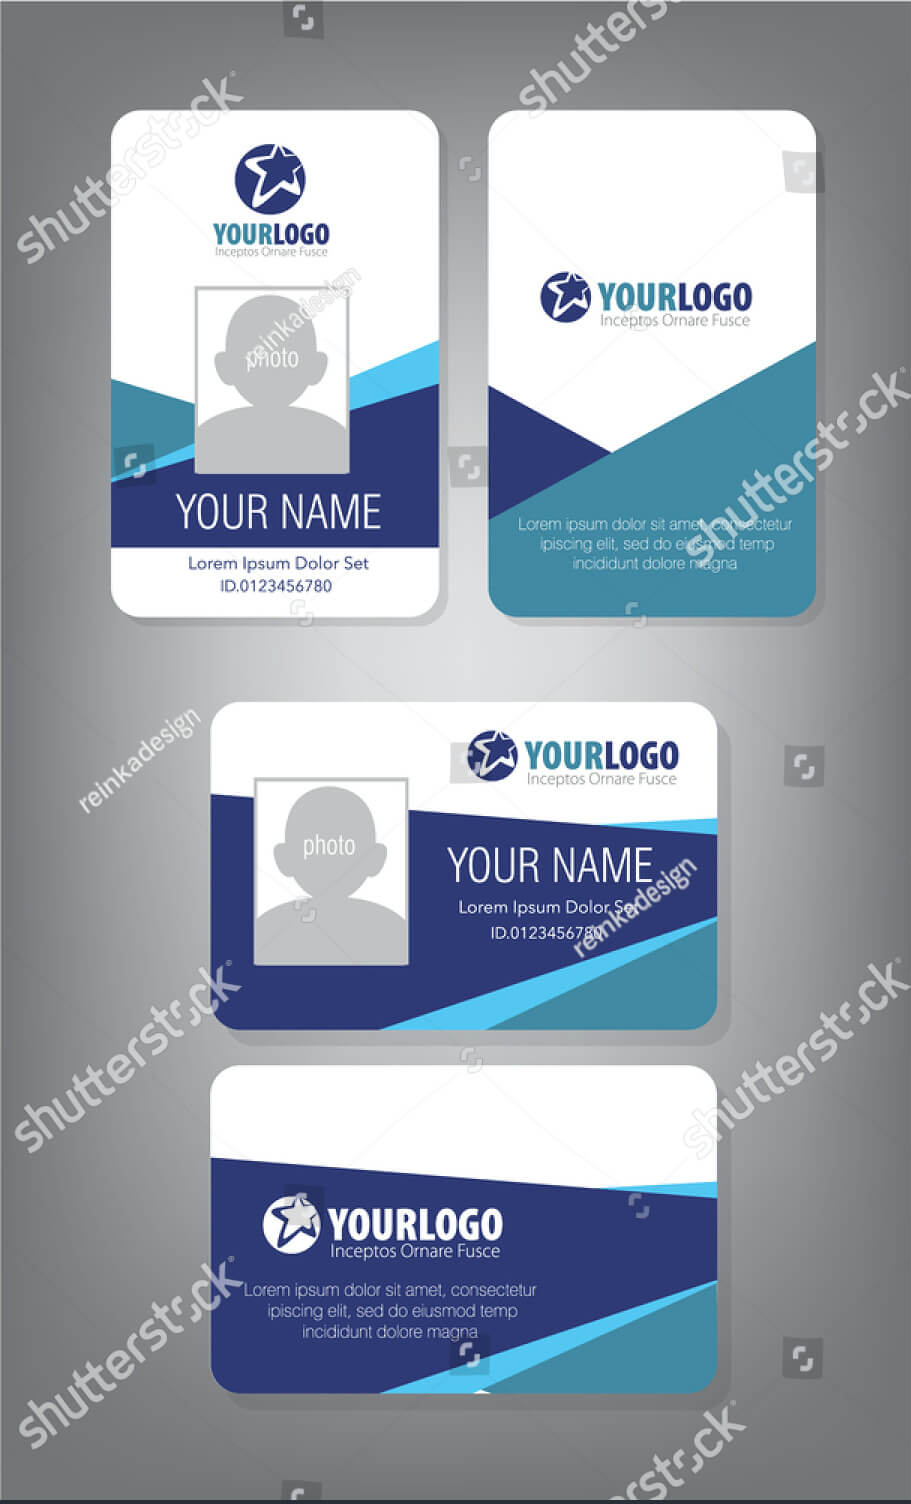 43+ Professional Id Card Designs - Psd, Eps, Ai, Word   Free throughout Id Card Design Template Psd Free Download